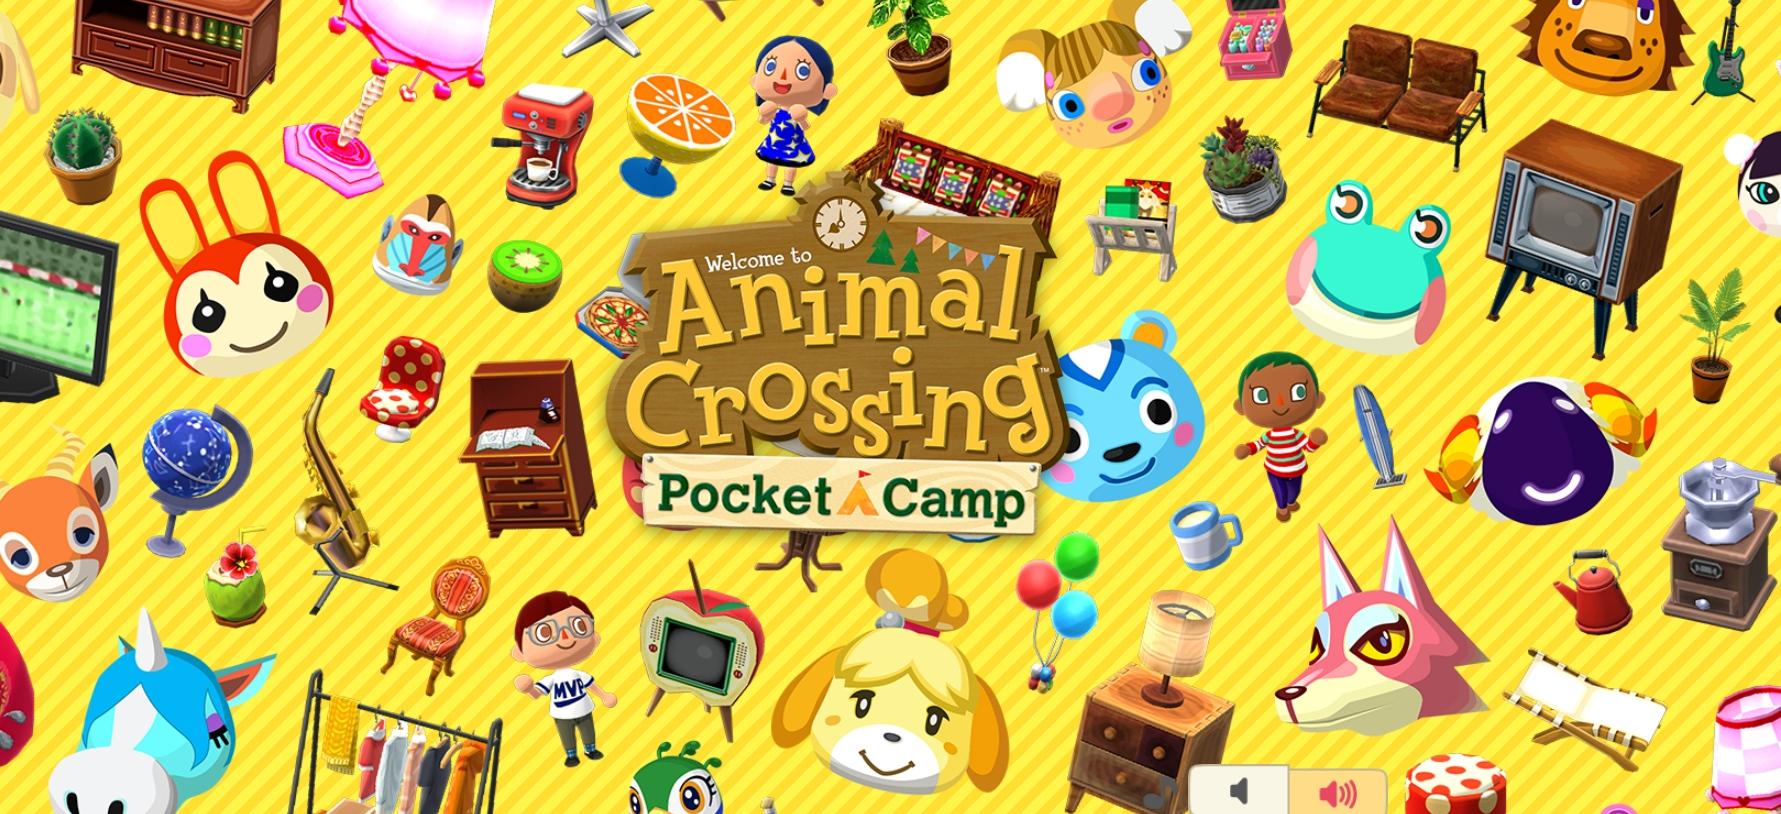 Animal Crossing: Pocket Camp Celebrates Two Year Anniversary With Subscription Benefits